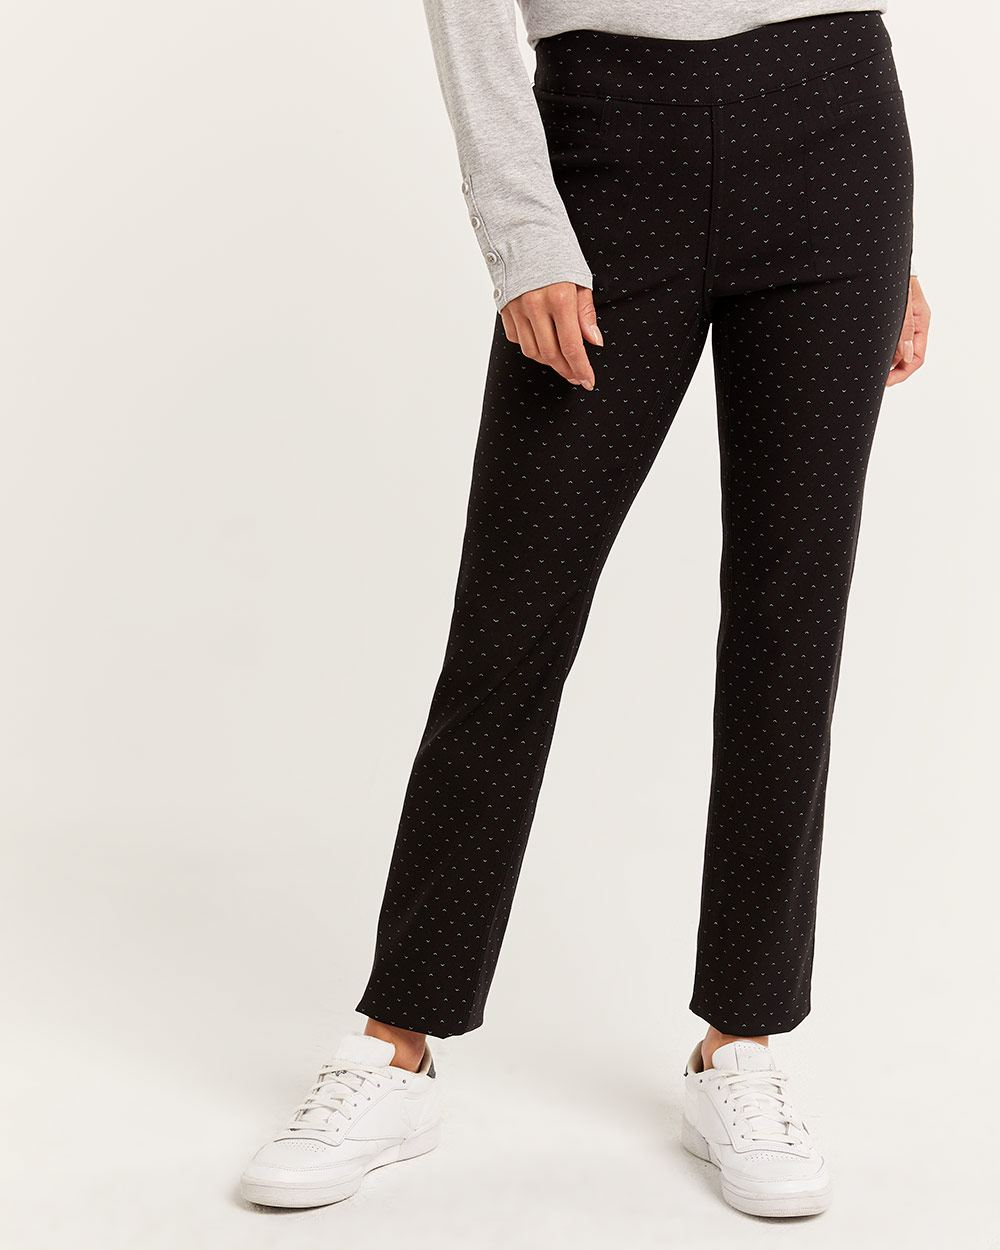 The Iconic Reversible Slim Leg Pull On Pants - Petite